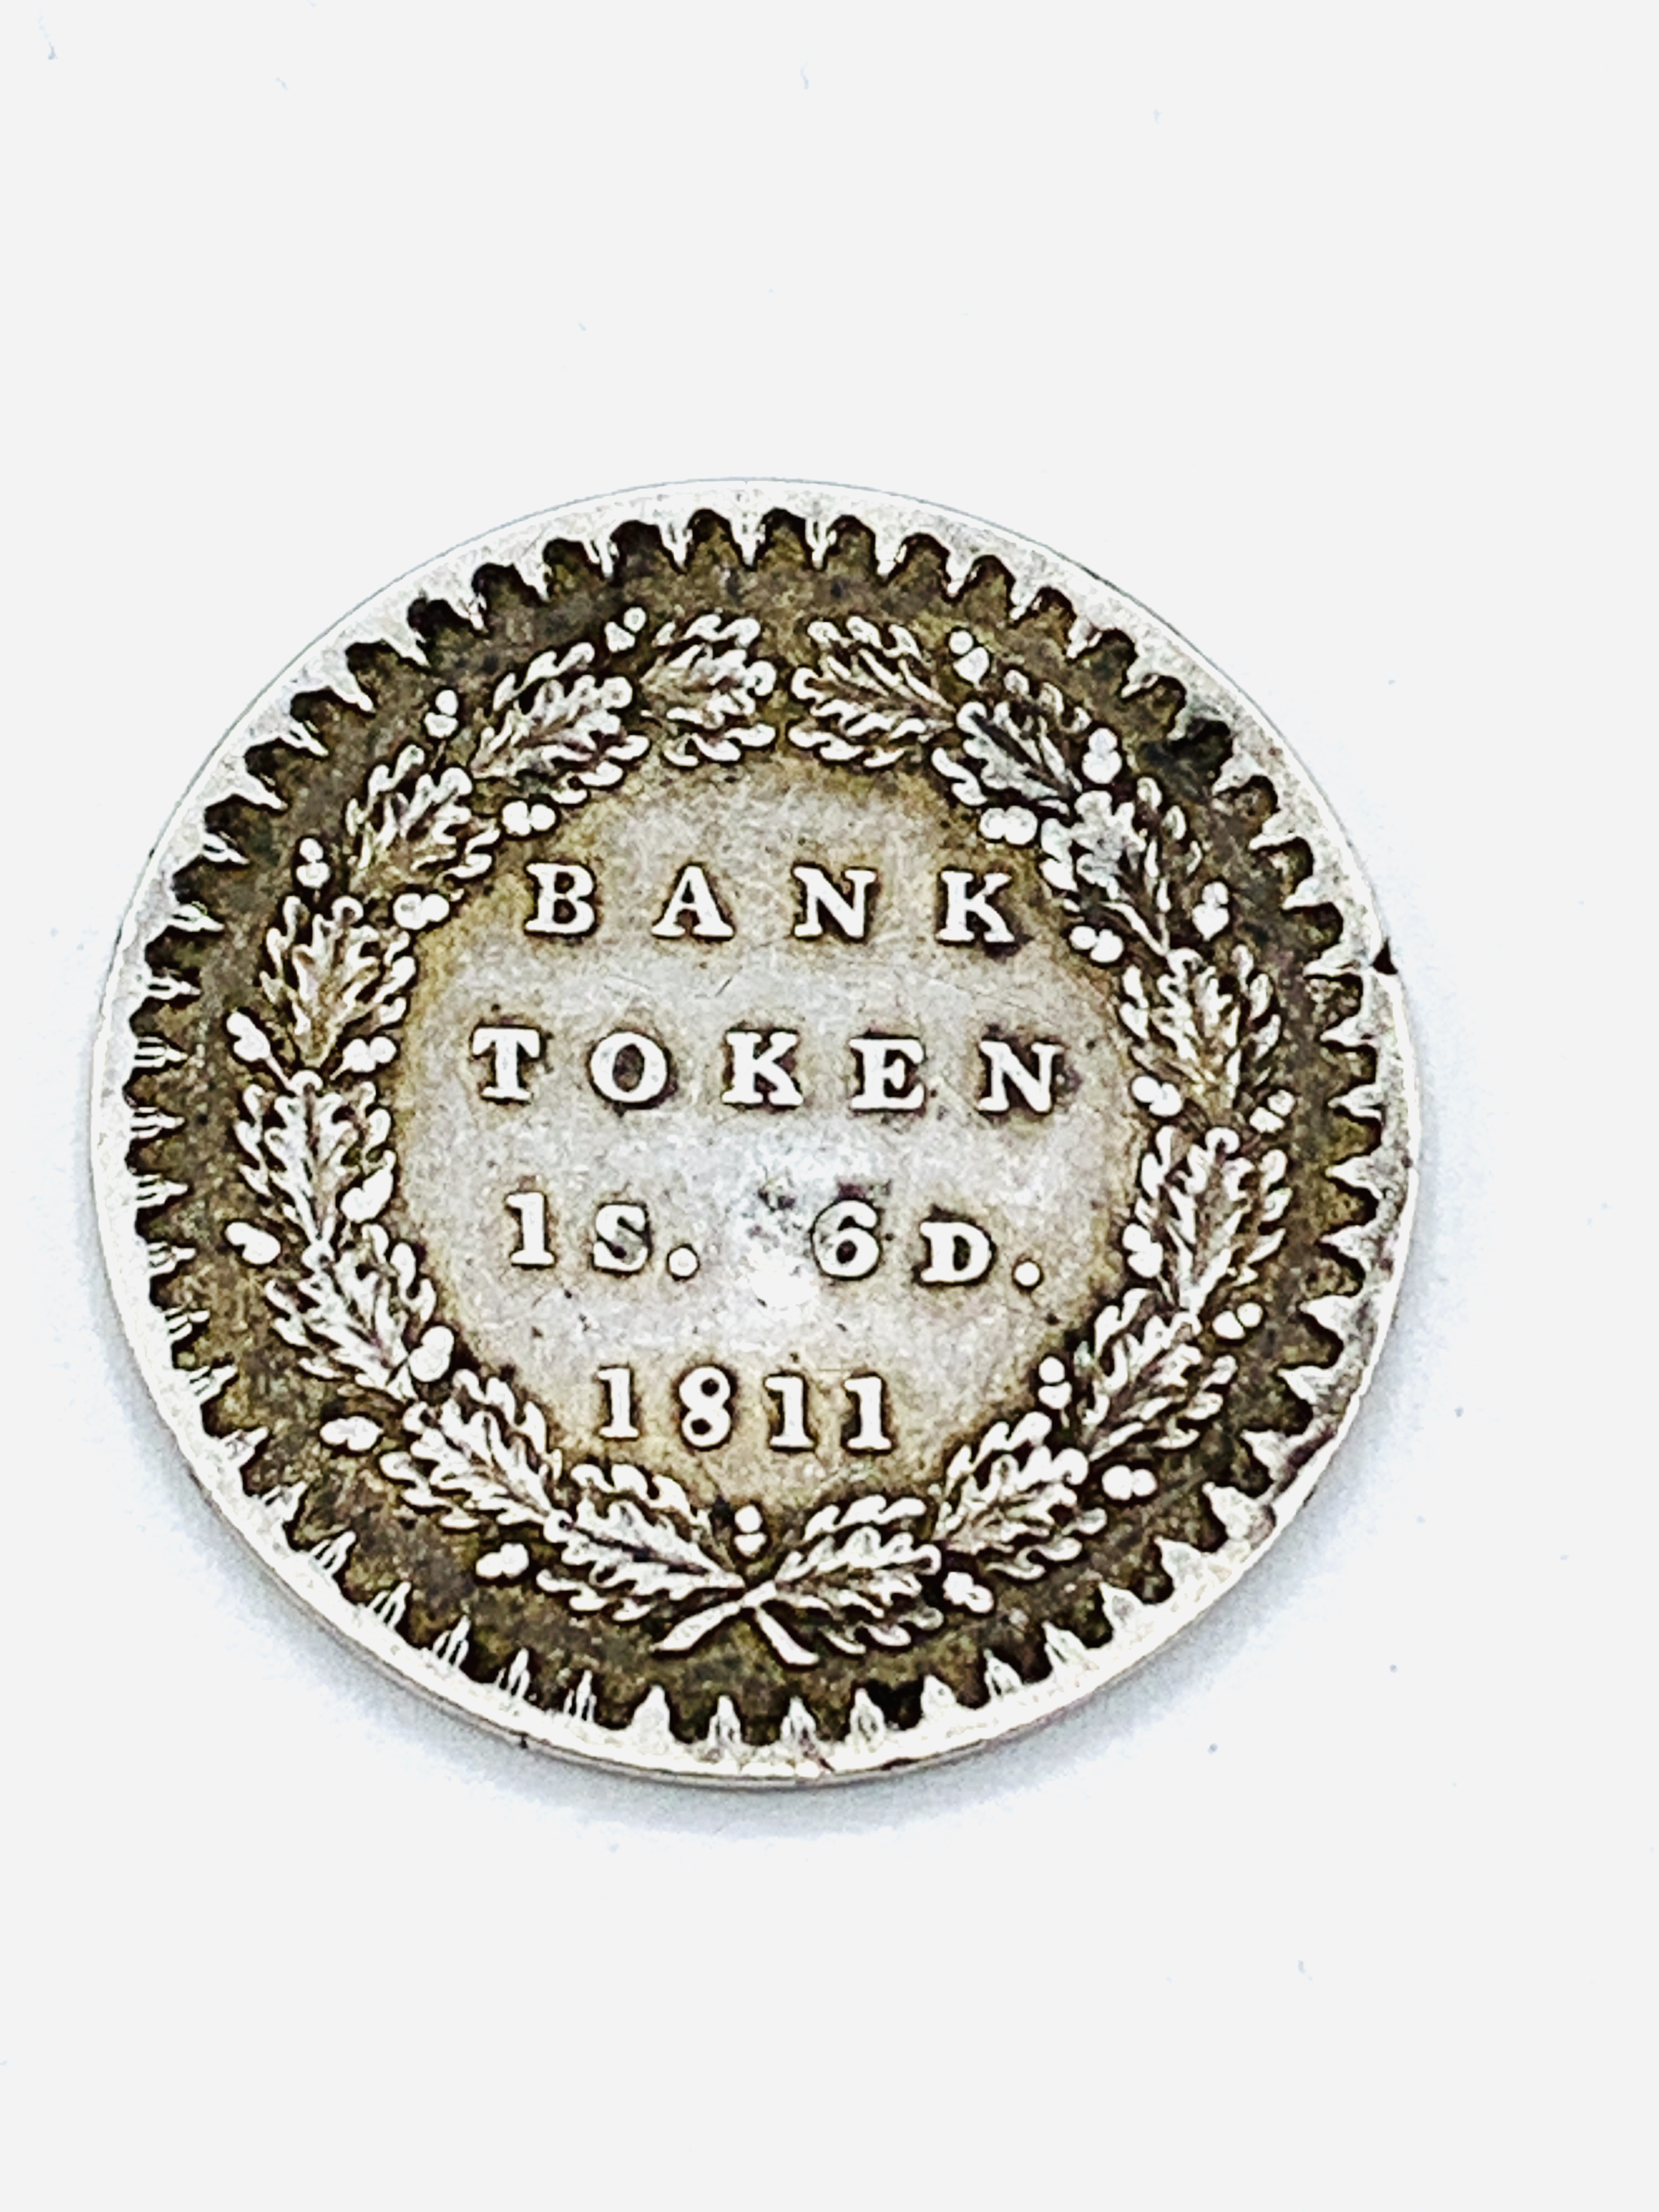 George III silver Bank Token for 1 shilling and 6 pence - Image 2 of 2